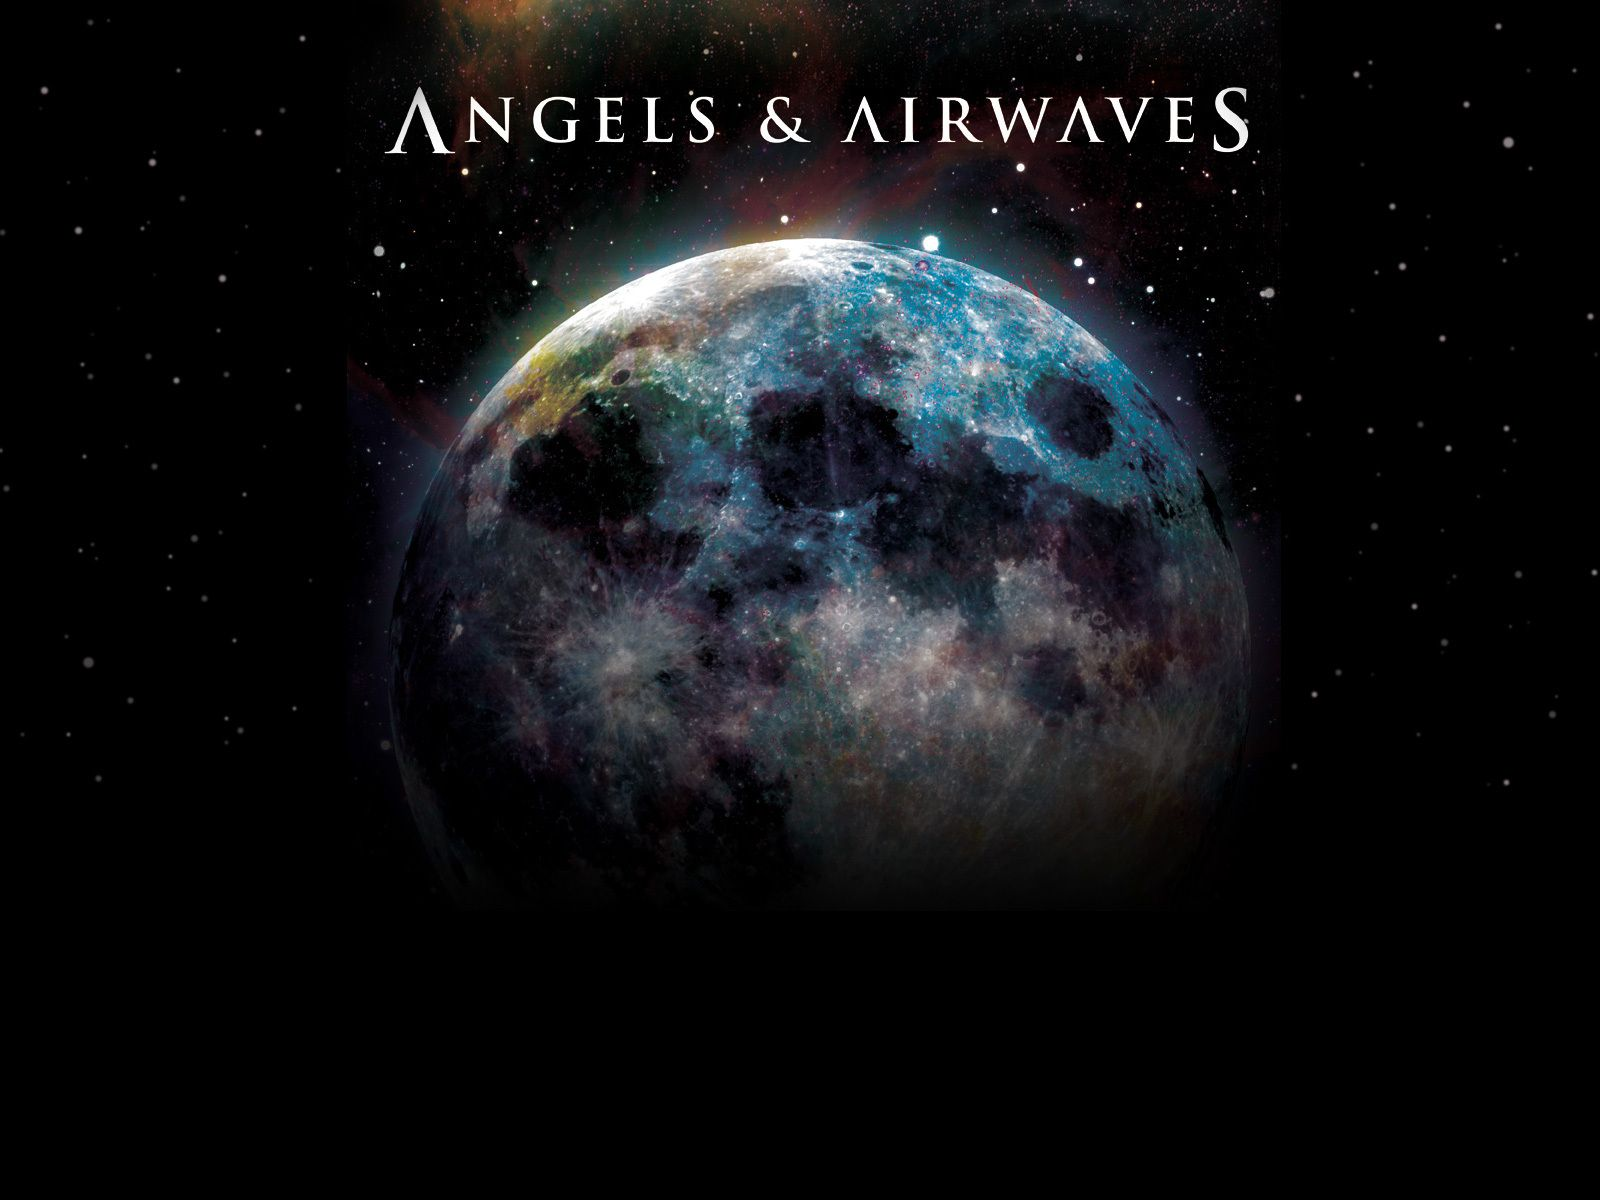 Angels And Airwaves Wallpaper Ava Moon Angels And Airwaves Background Hd Wallpaper Angel